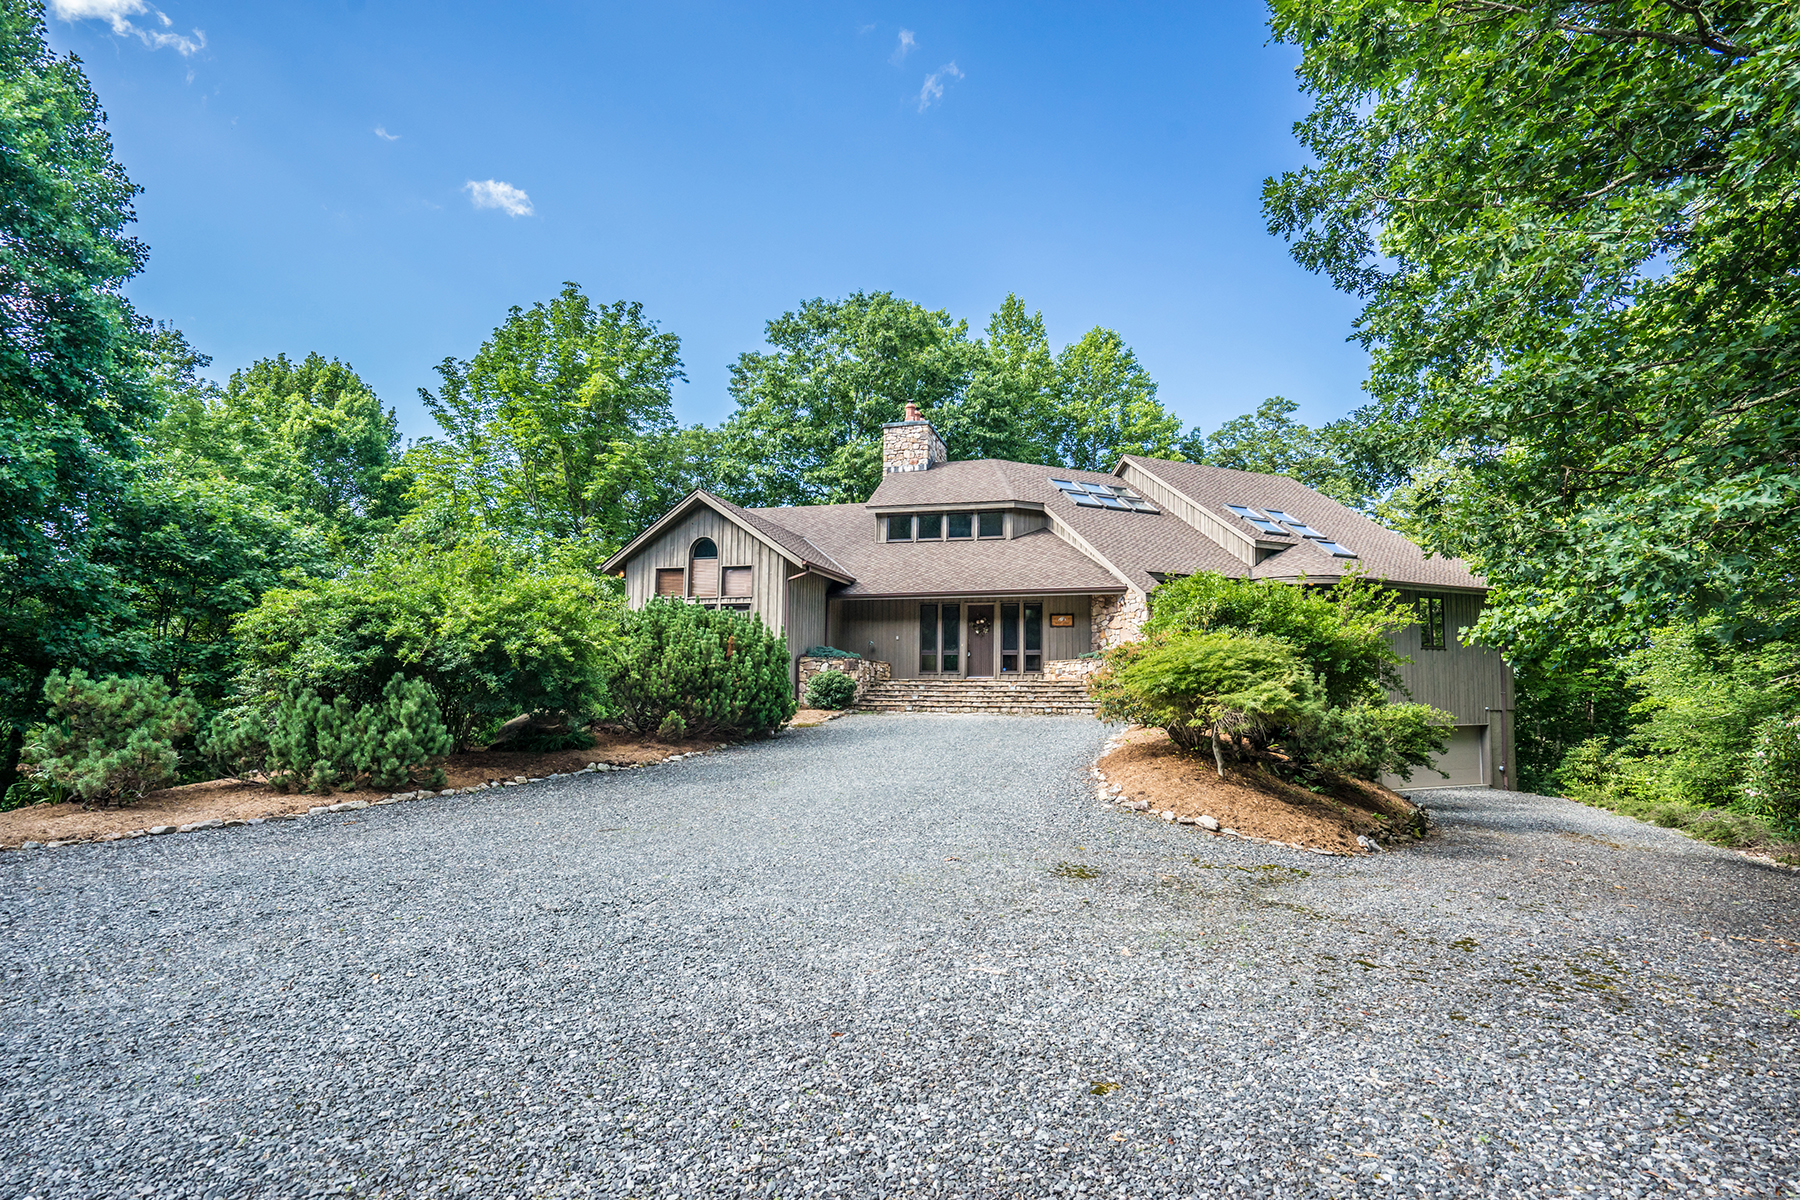 Single Family Home for Sale at VALLE CRUCIS 910 Dutch Creek Rd, Banner Elk, North Carolina, 28604 United States